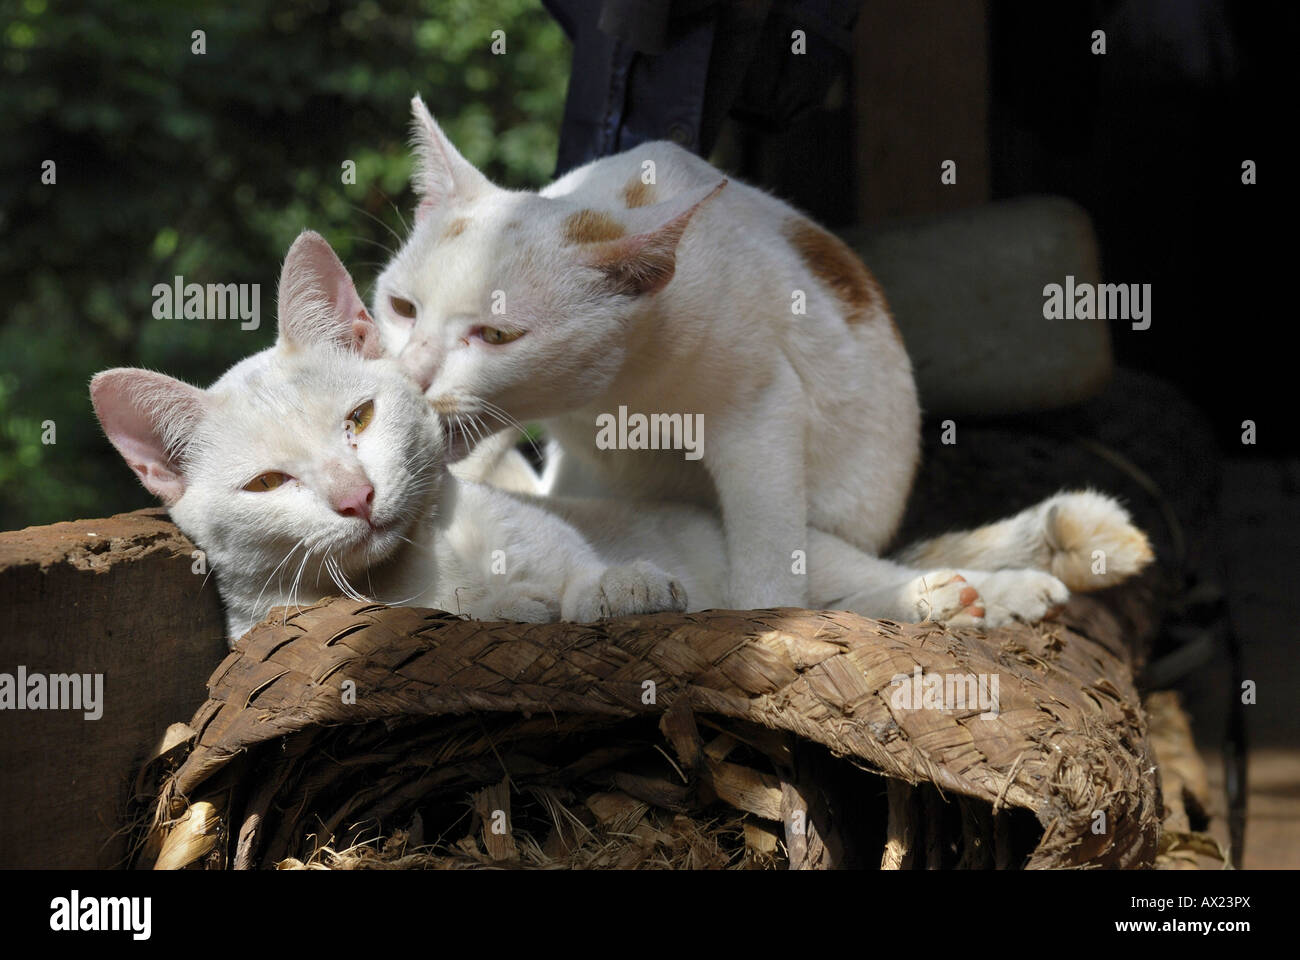 Two fondling cats, Cambodia Stock Photo